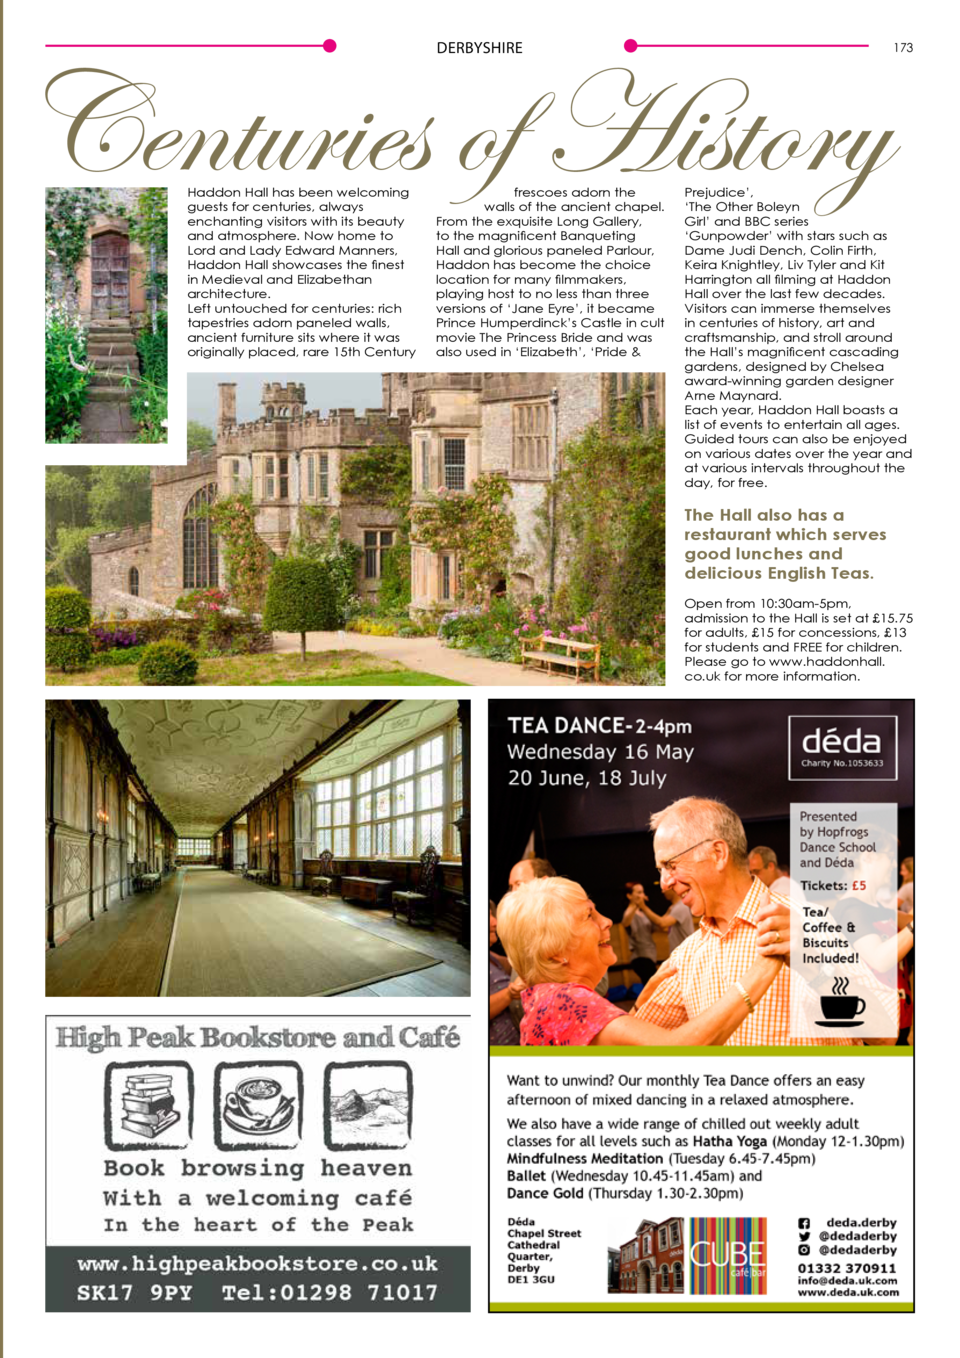 DERBYSHIRE  Centuries of History Haddon Hall has been welcoming guests for centuries, always enchanting visitors with its ...